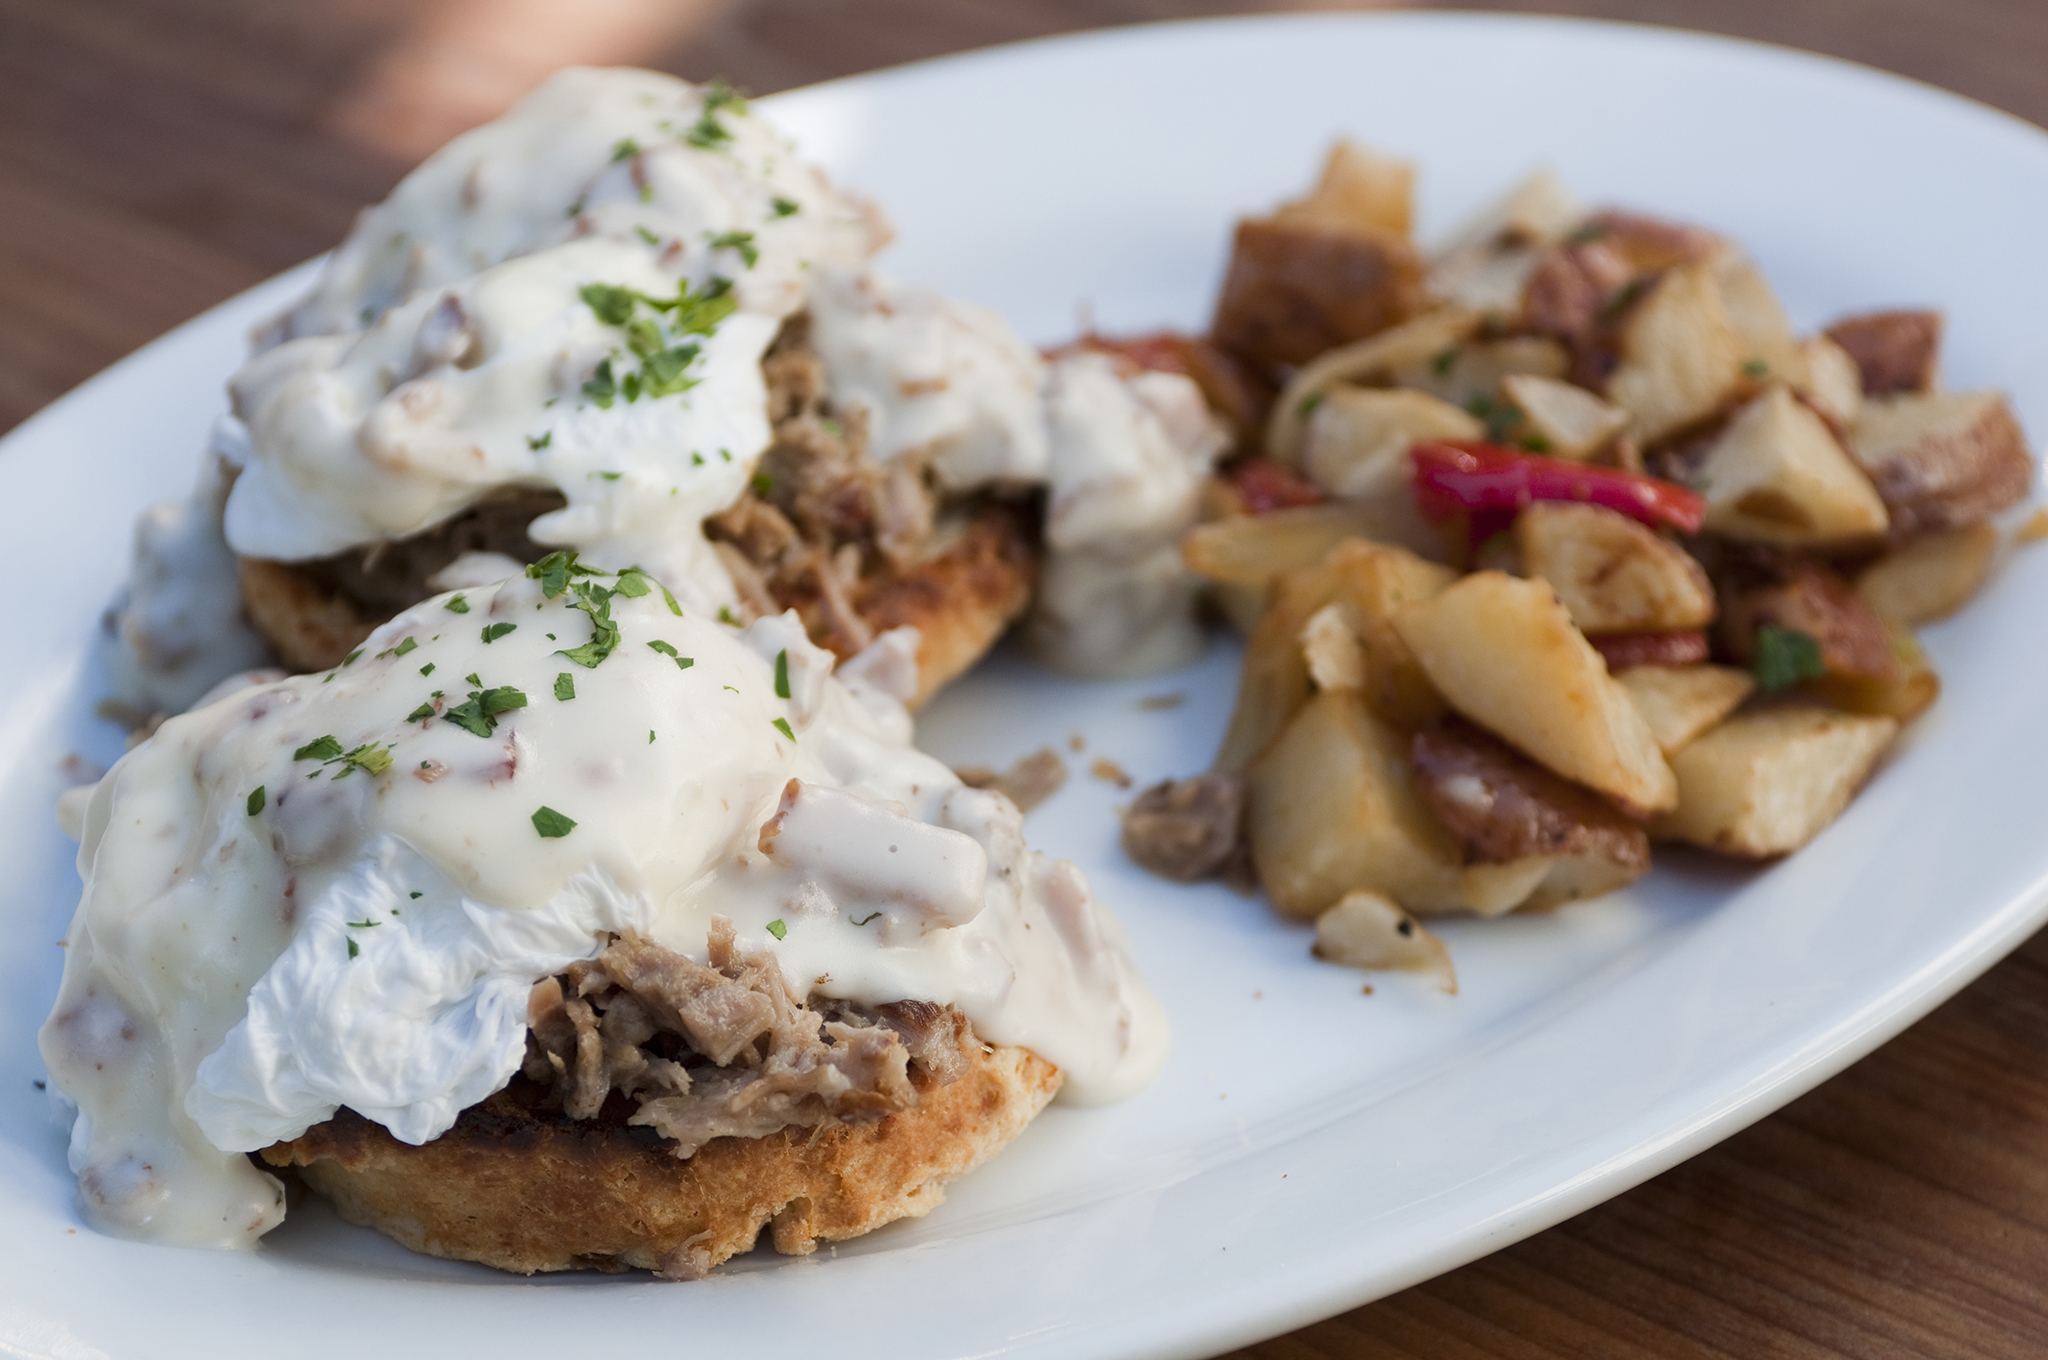 Pulled pork with an Asiago biscuit, poacked eggs, country gravy and potatoes at Maximilliano